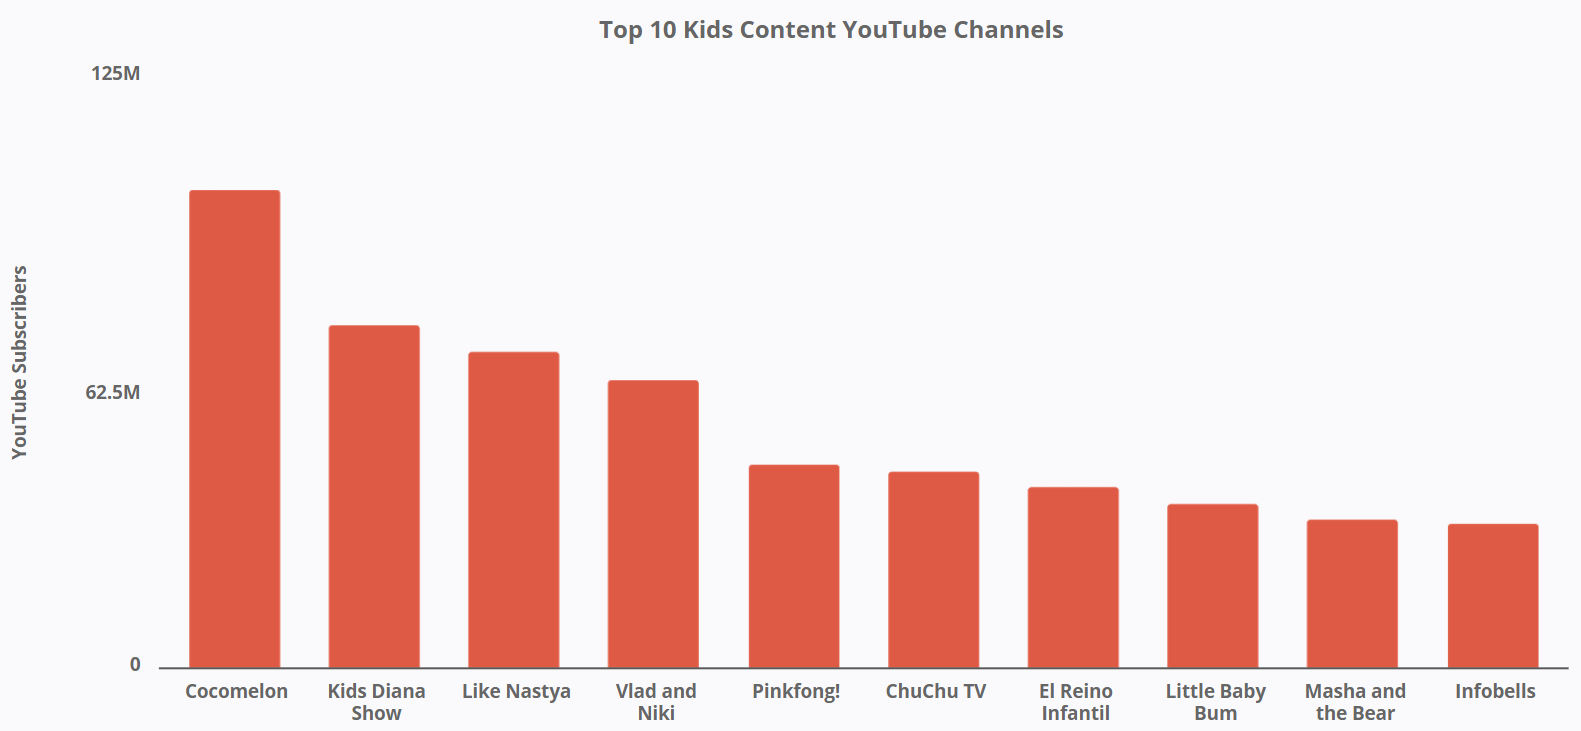 YouTube - Top 10 Kids Content YouTube Channels